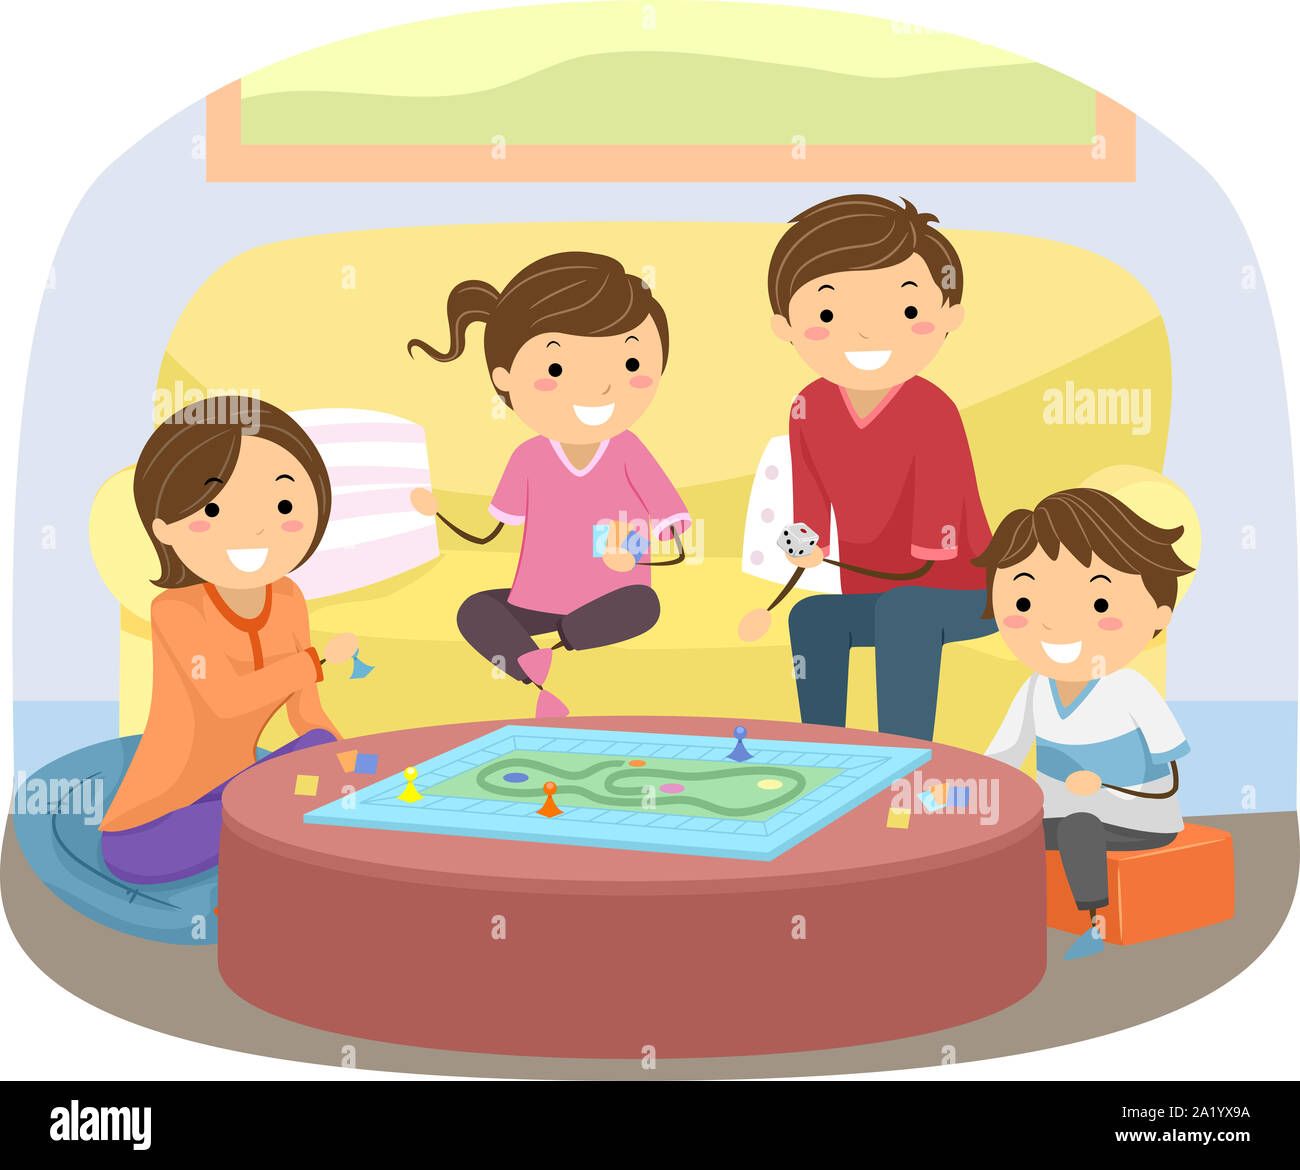 Illustration Family Playing Board Game High Resolution Stock Photography And Images Alamy